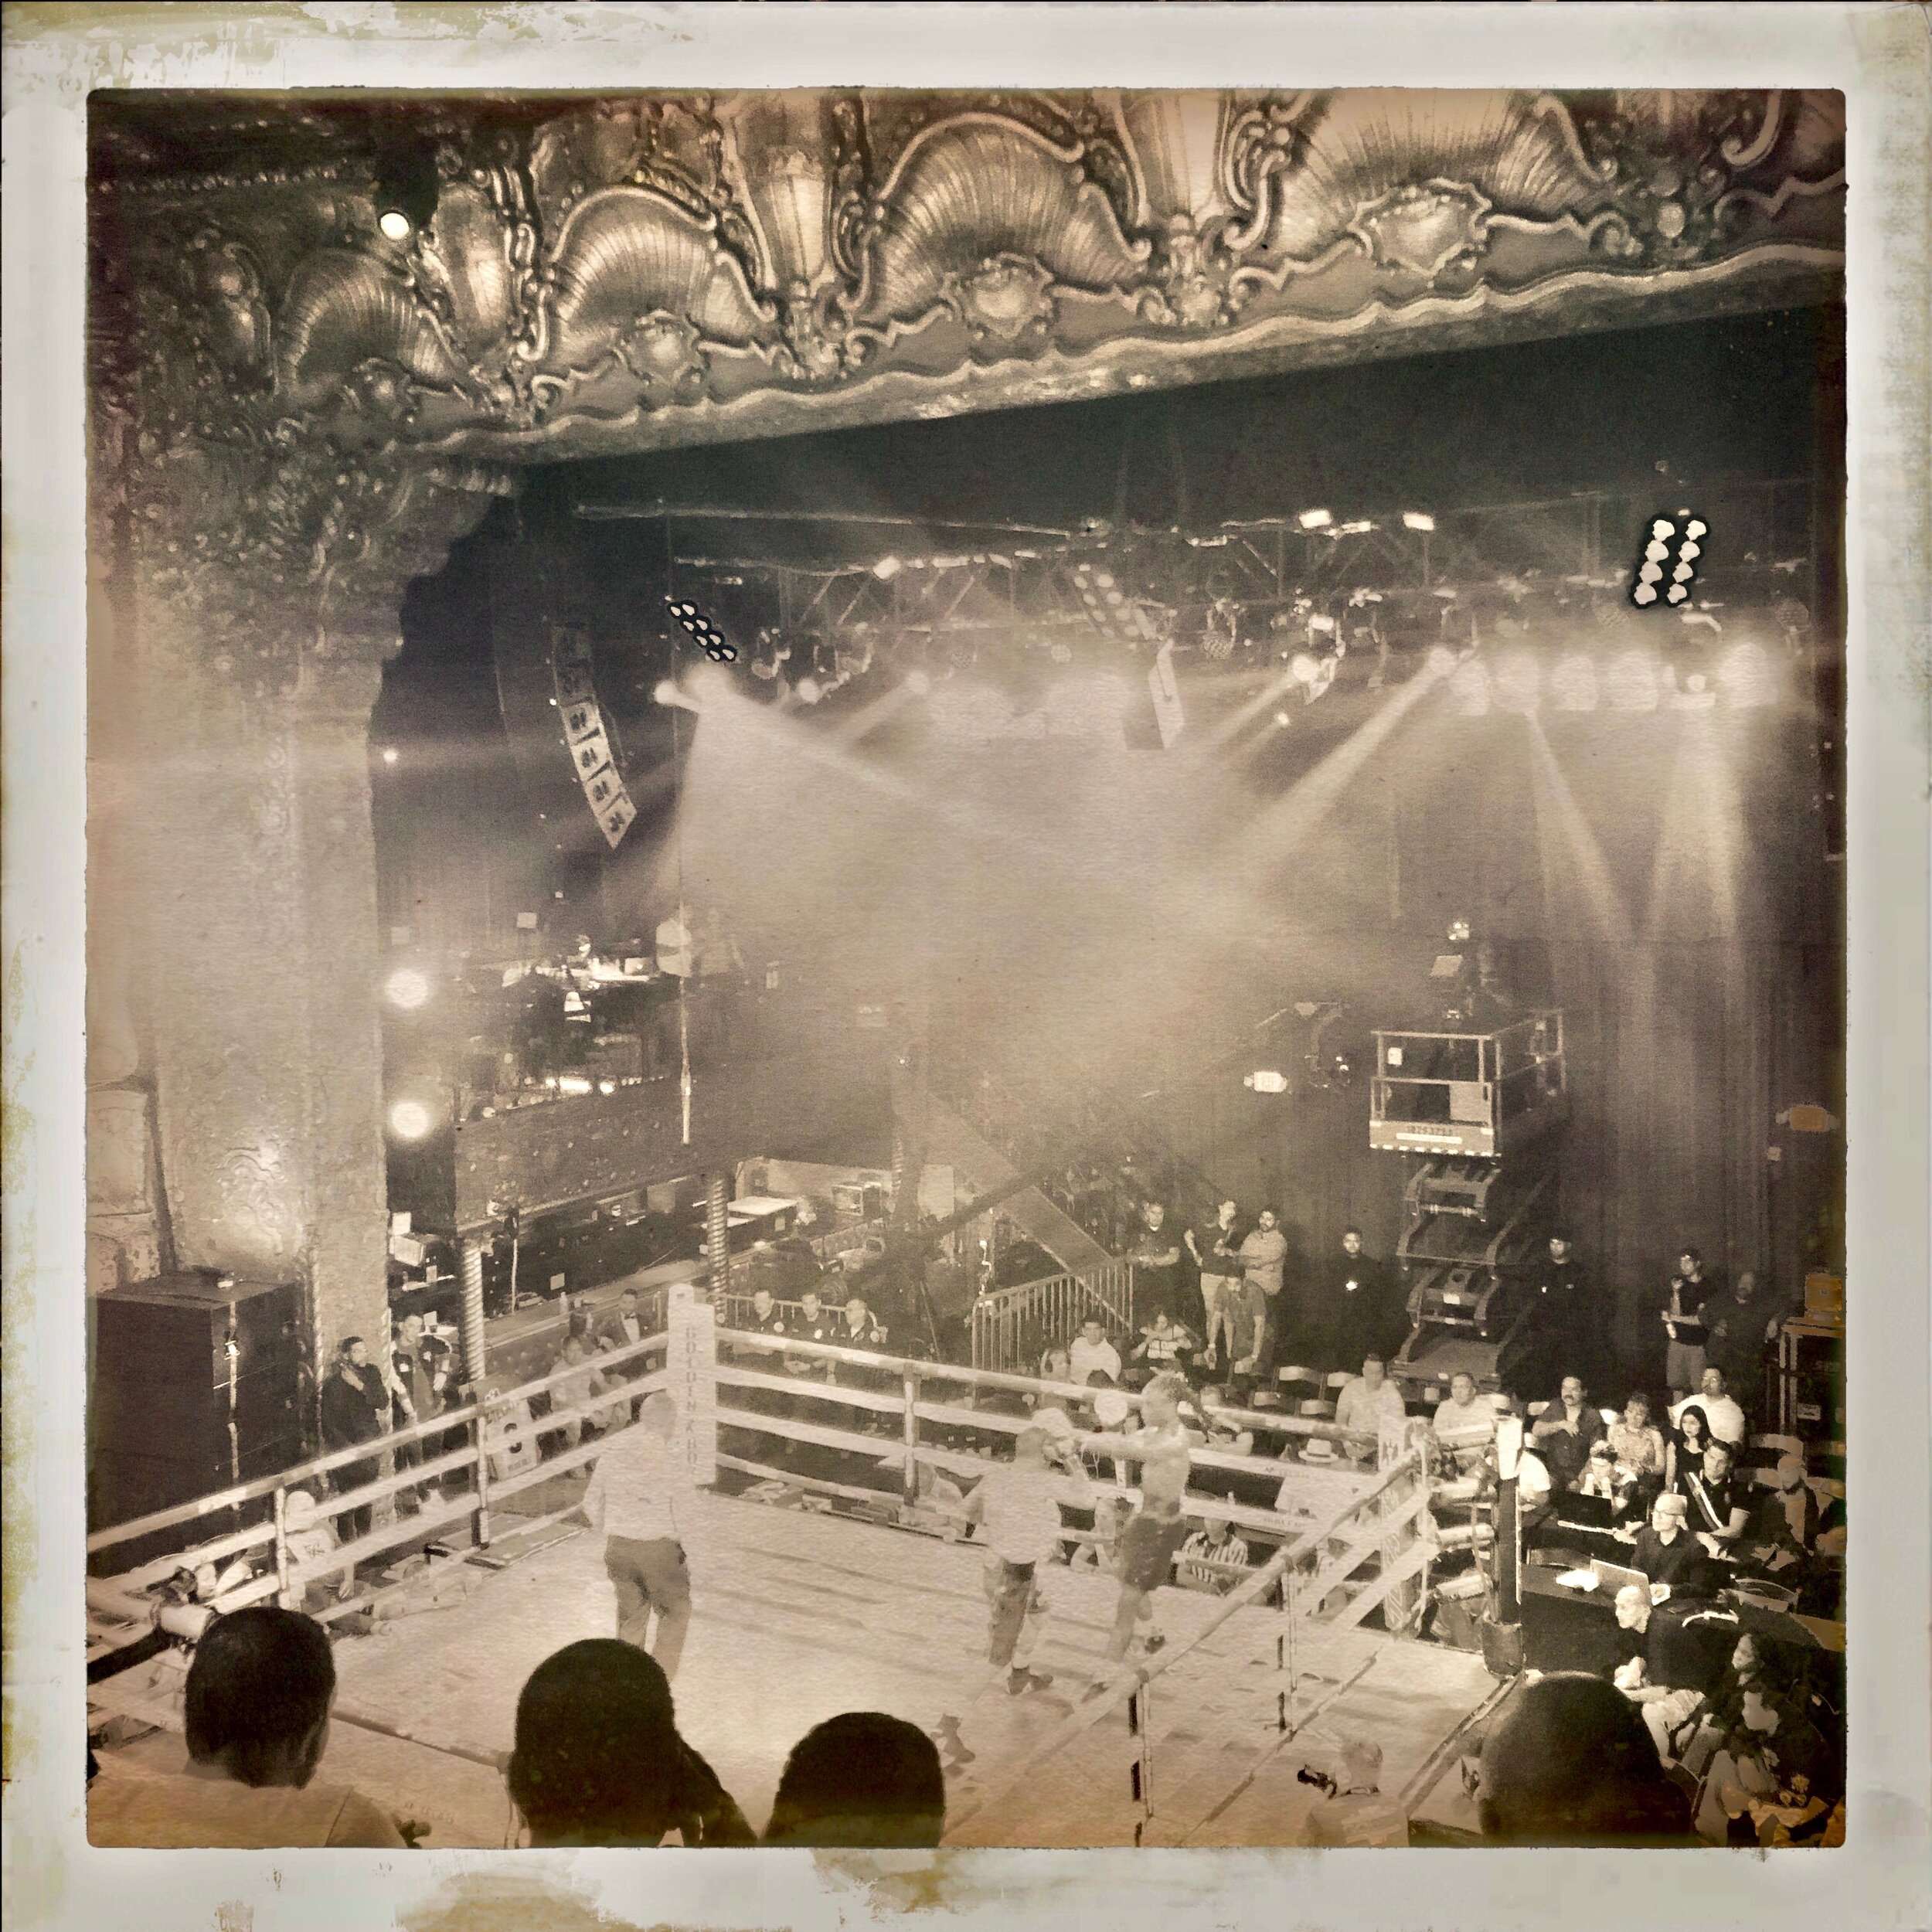 Hipstamatic Boxing, Belasco Theater, Los Angeles, 9-5-19